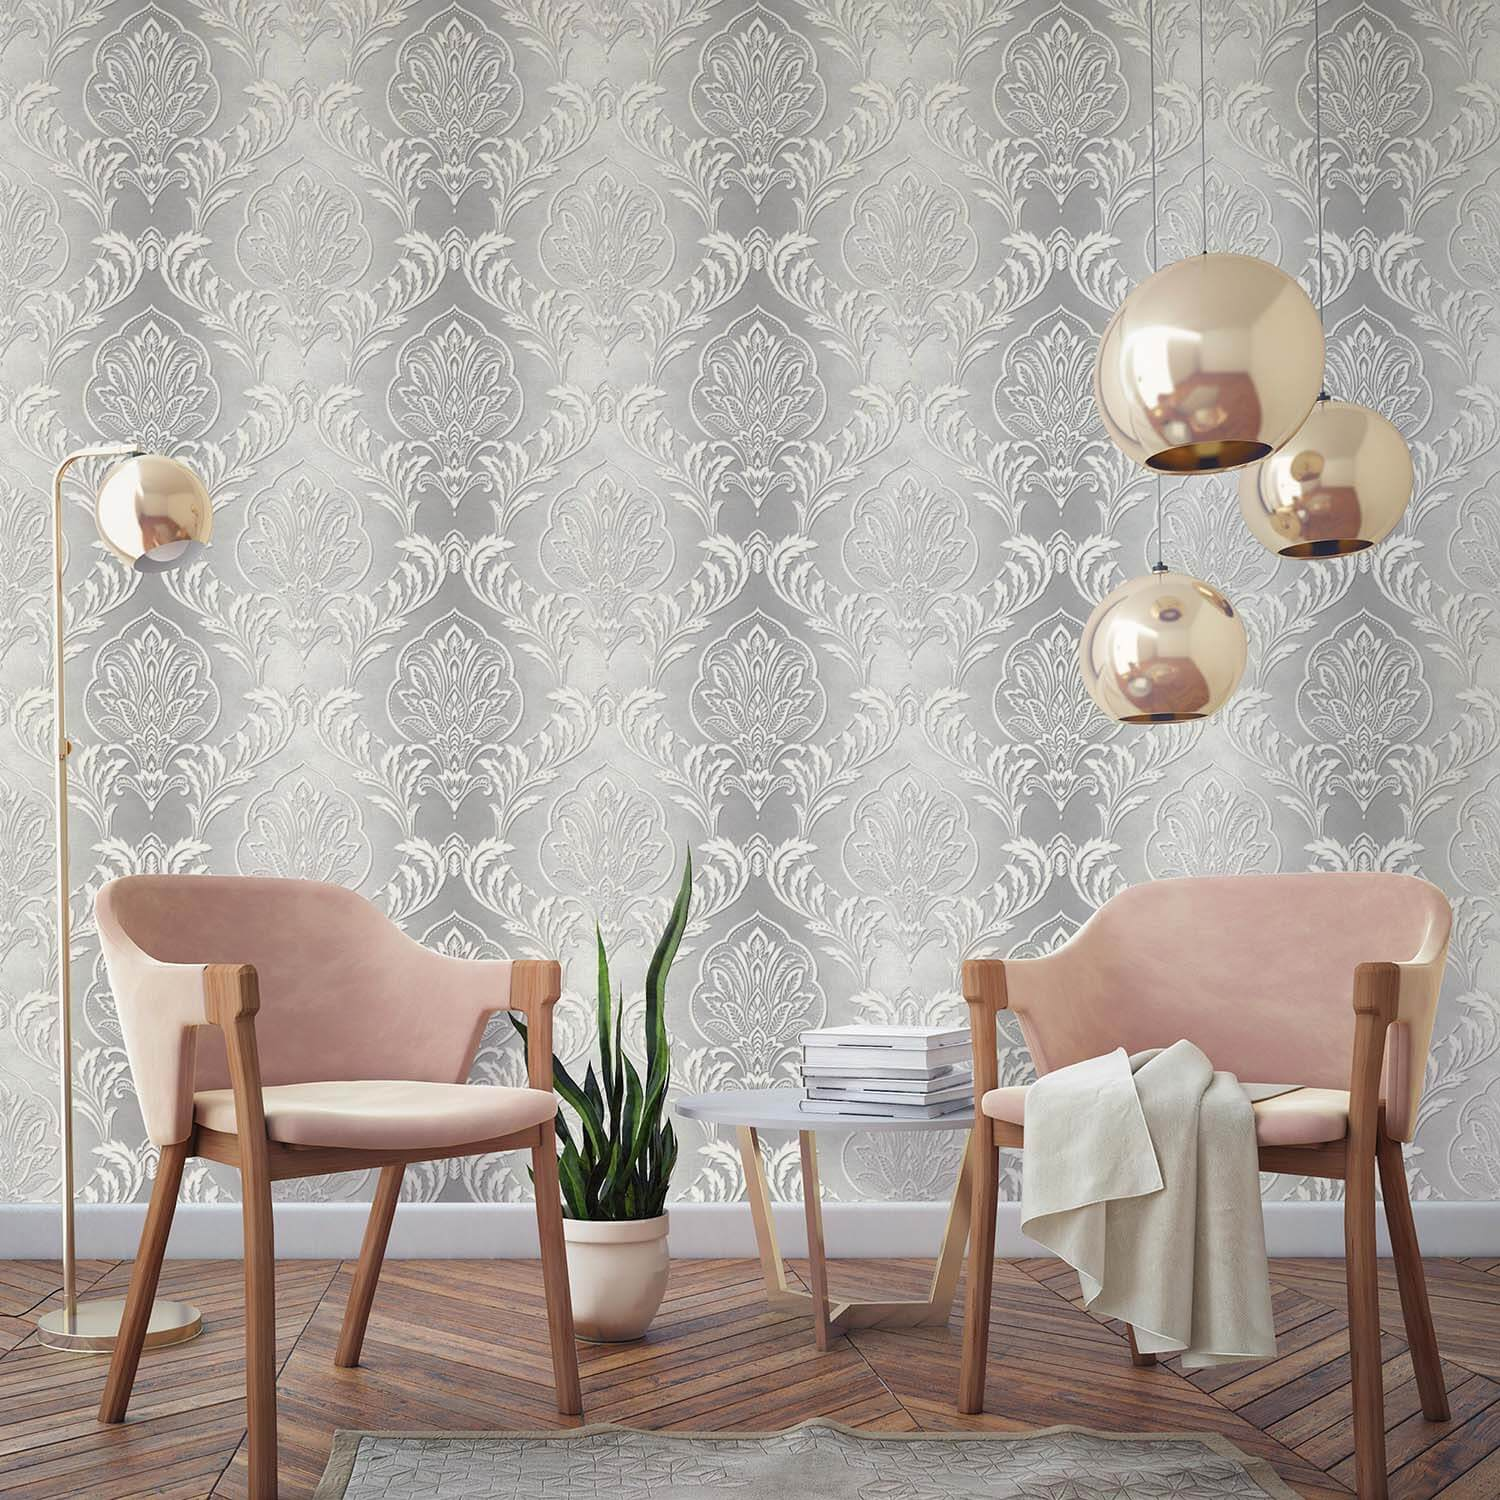 win with inspired wallpaper room decore with duck egg wallpaper